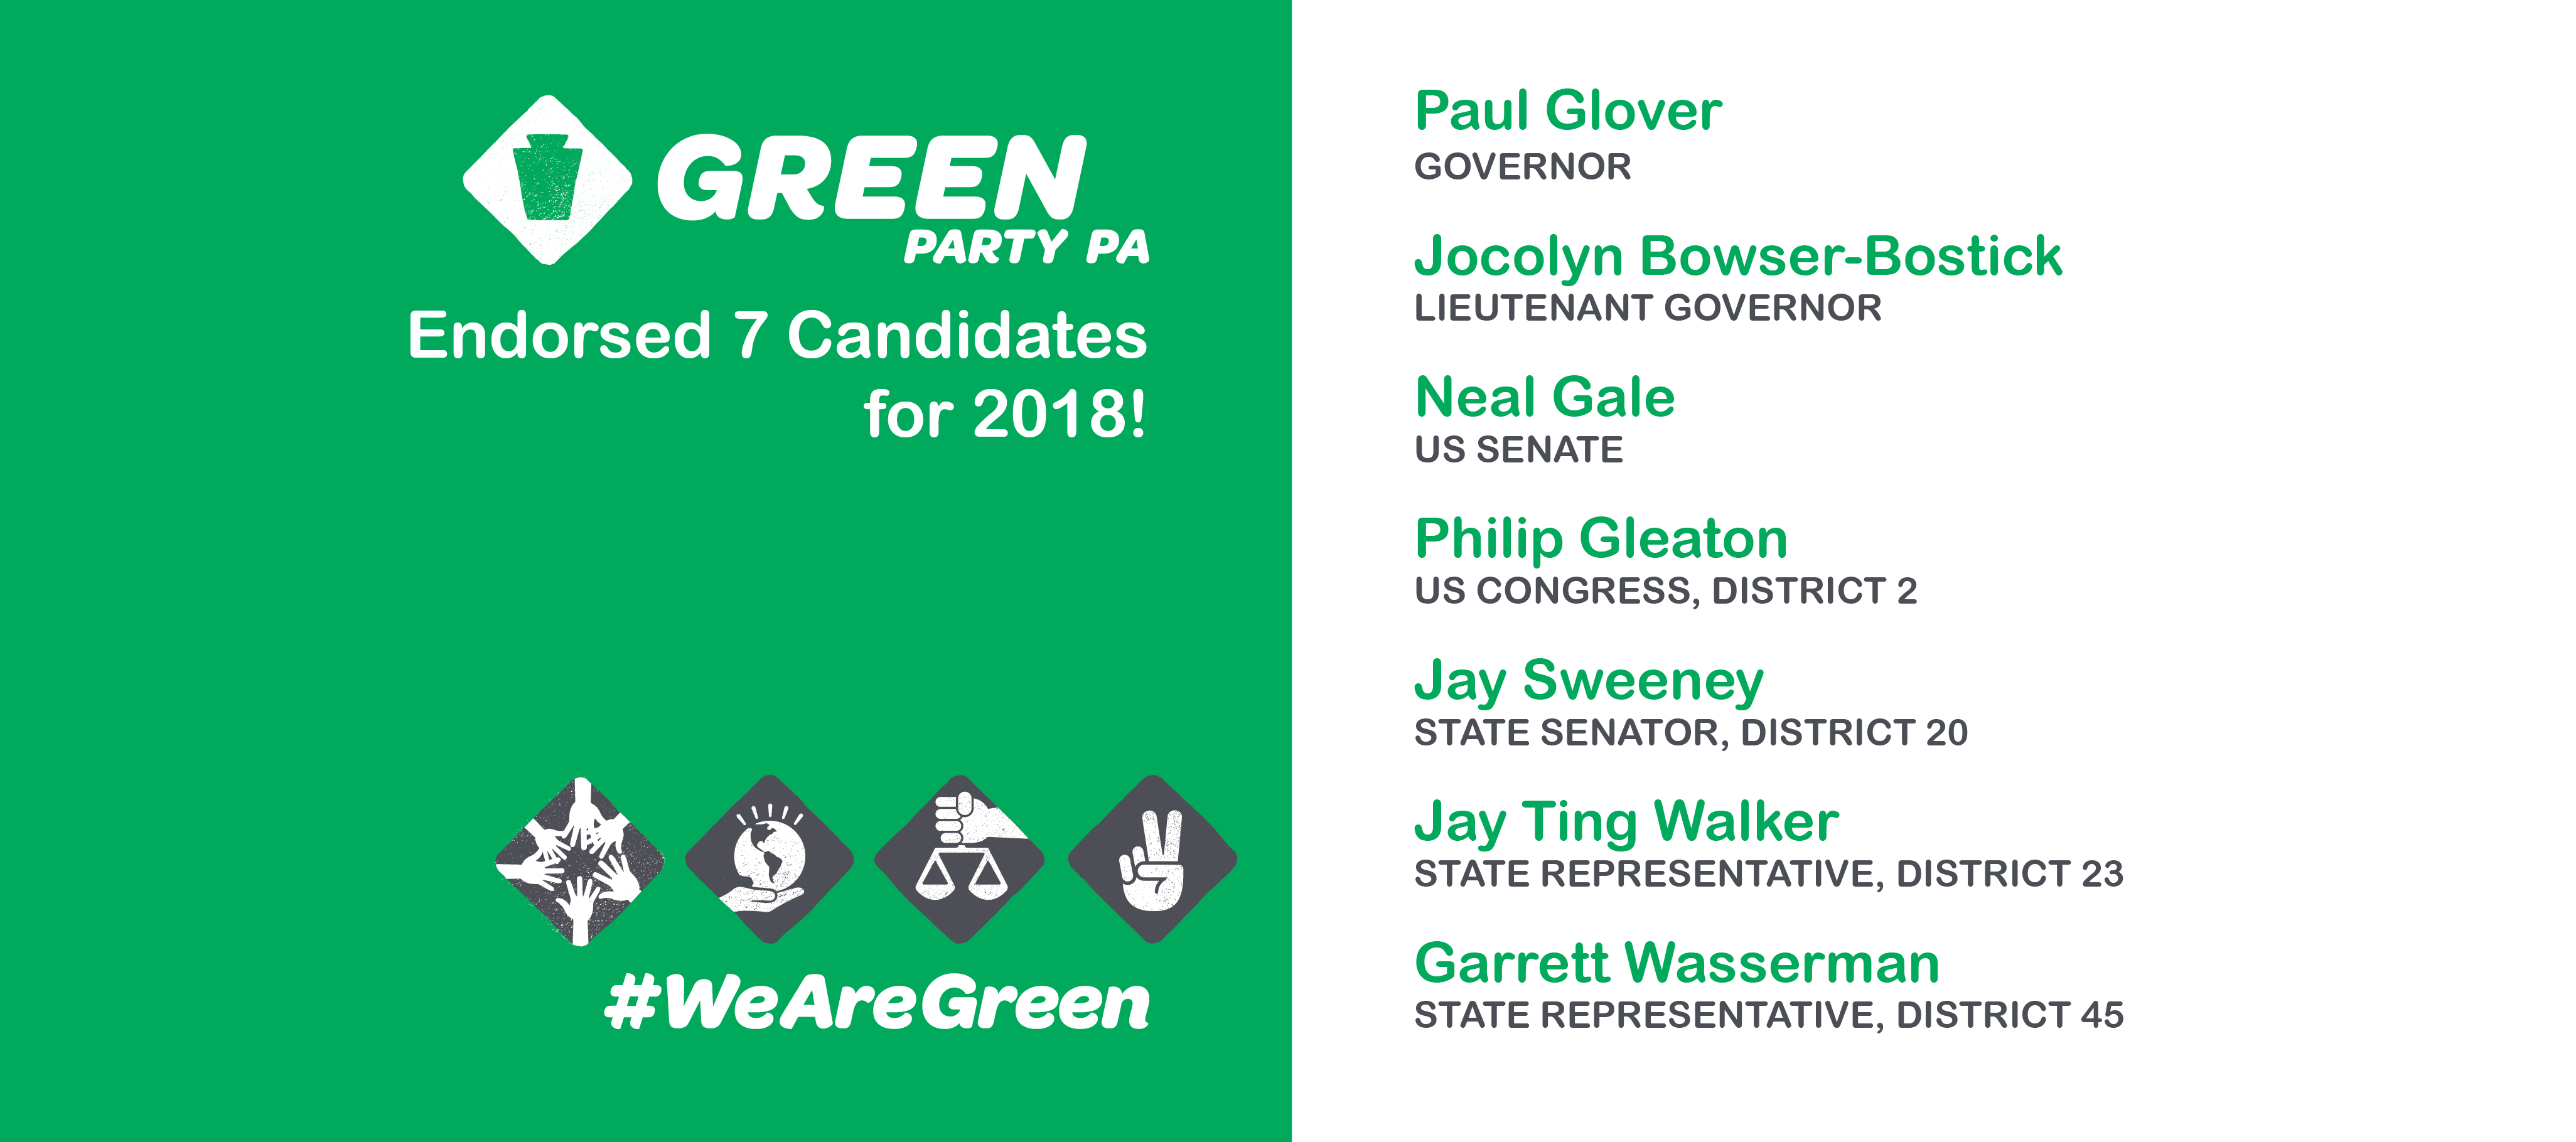 Green Party Of Pennsylvania Announces Seven Candidates For 2018 State And  National Election